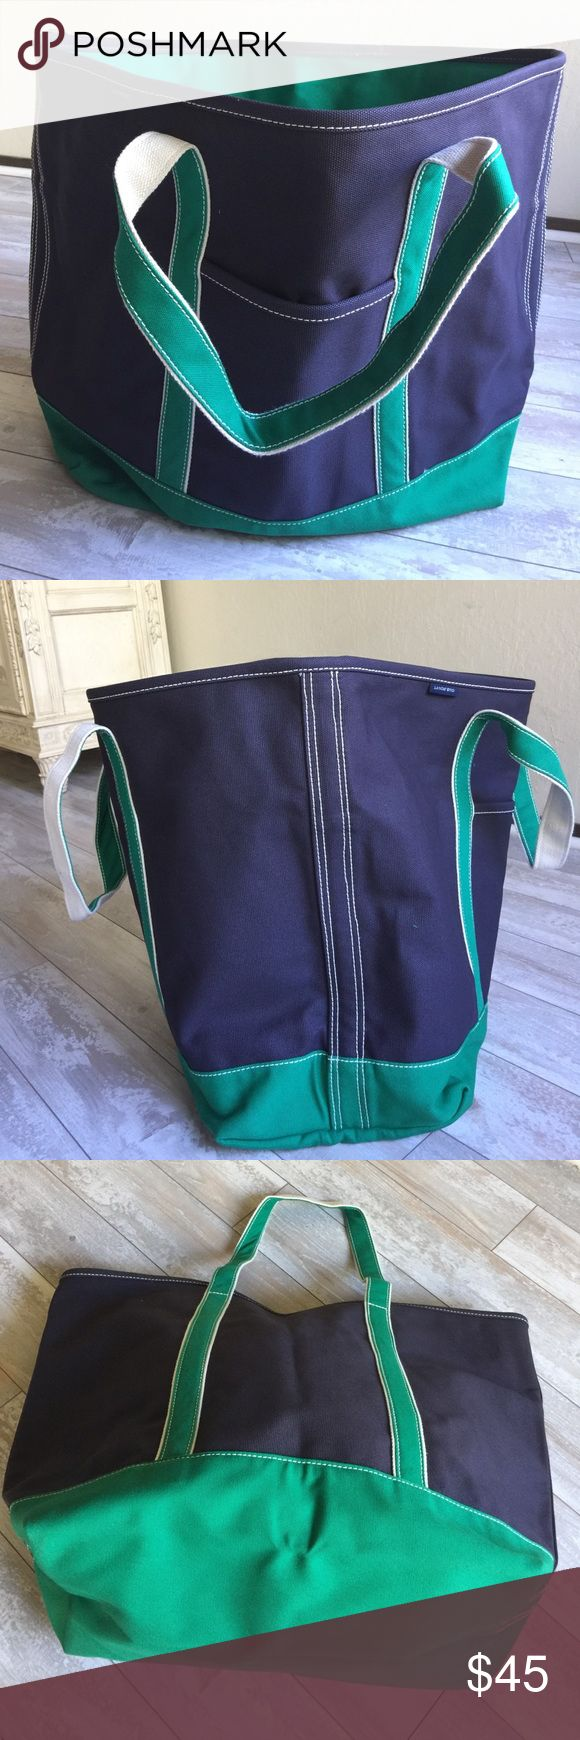 """Lands' End X-large Navy Zip-top Canvas Bag.17255 Bag composed of 24 oz.100% """"navy"""" cotton csnvas, reinforced trim, handles and bottom in """"dark Kelly green"""" is endlessly durable, weight tested to hold 500 lbs. when only handles break! Stands upright when empty. A large snapped interior pocket and key fob on one side with 3 open pockets other interior side; one exterior pocket. 9.25"""" handle drop allows bag to be carried over shoulder. 25"""" long polyester zipper top closure. Use for travel…"""